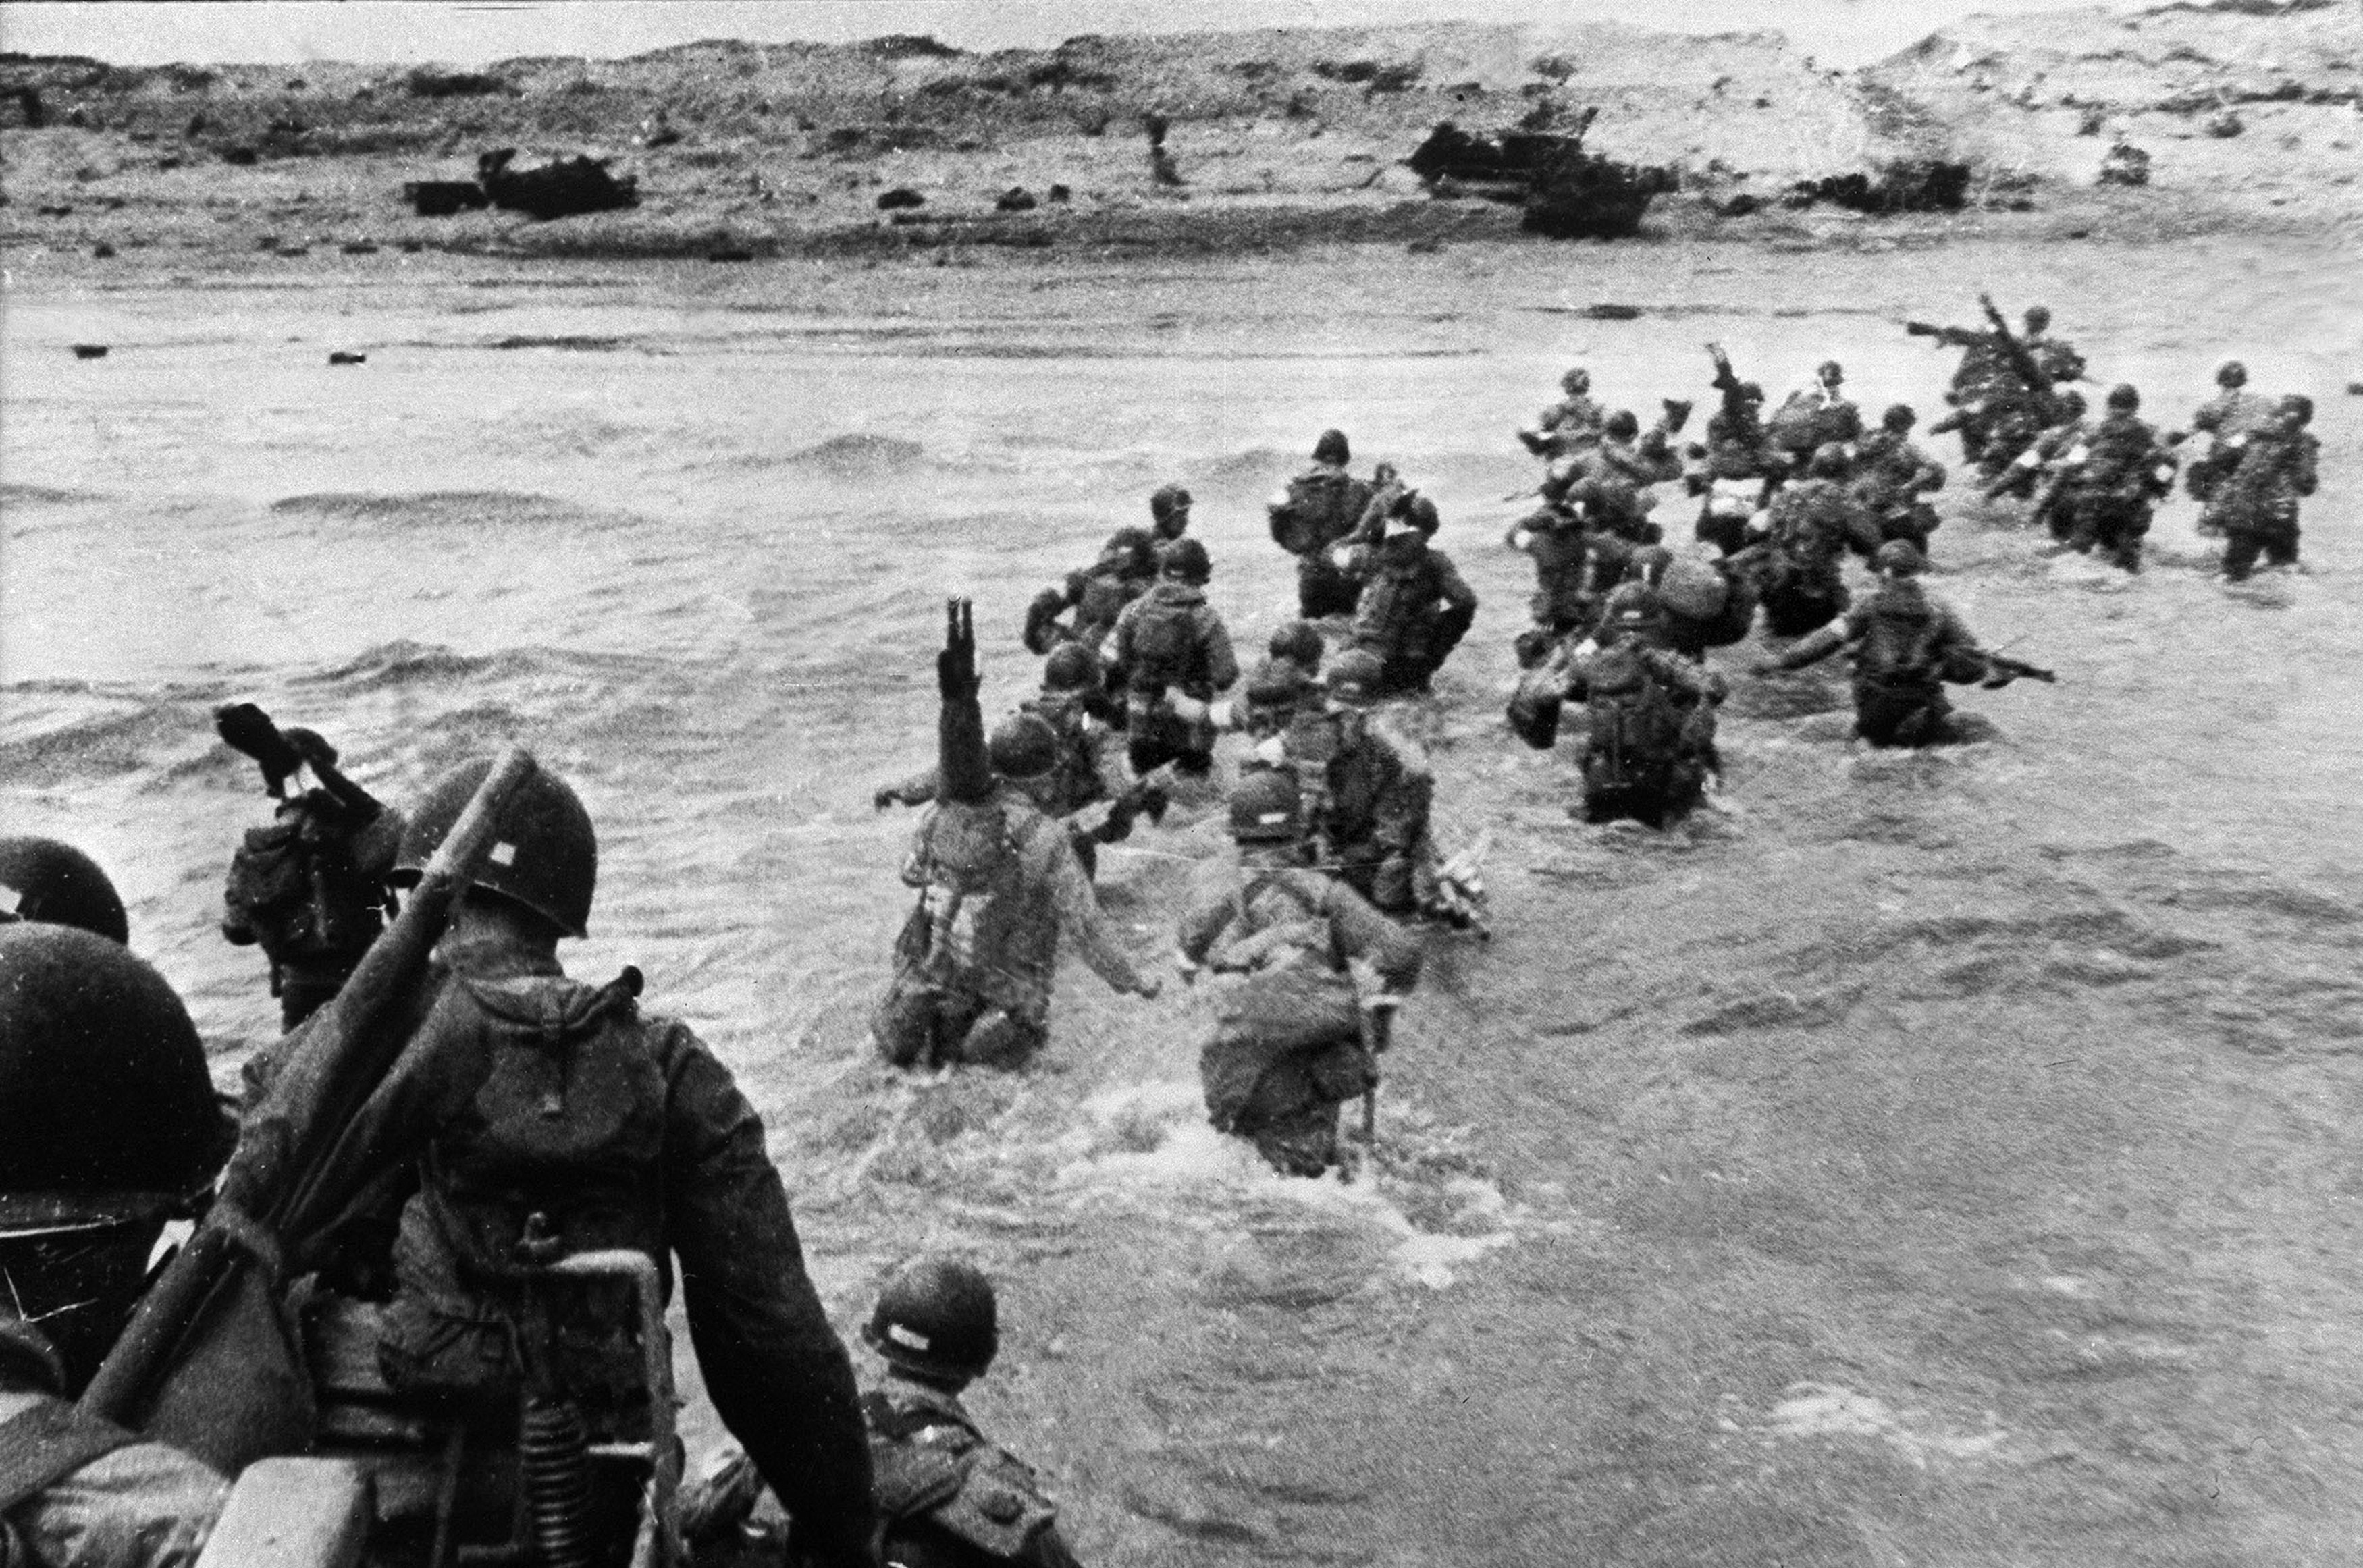 Jim DeFelice: On D-Day's 75th anniversary, learning about the sacrifice is more crucial than ever